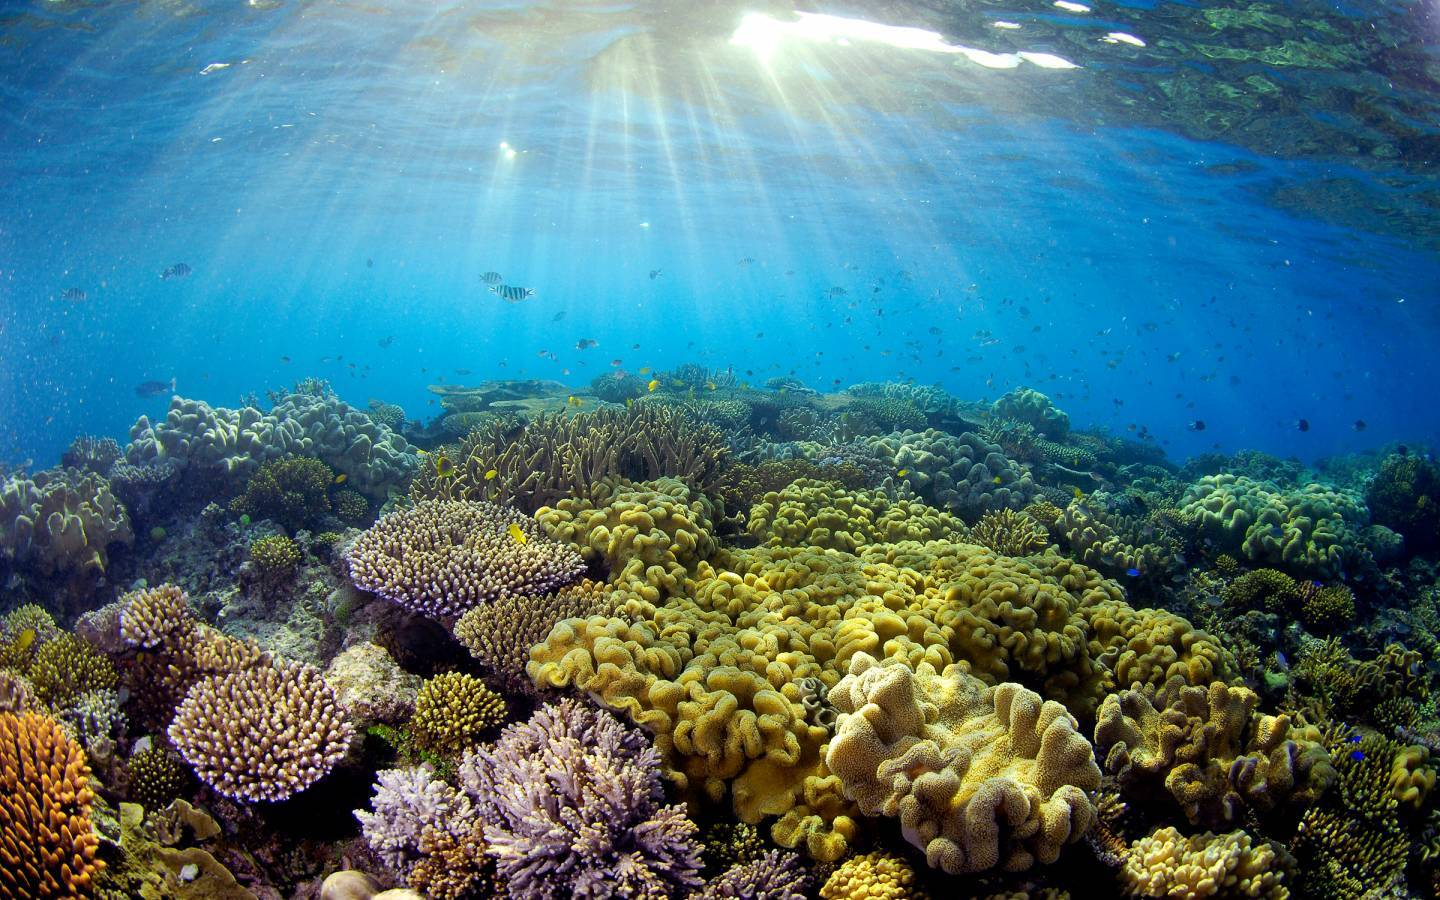 Sonneneinfall auf Korallen, Great Barrier Reef, Quensland, Australien.